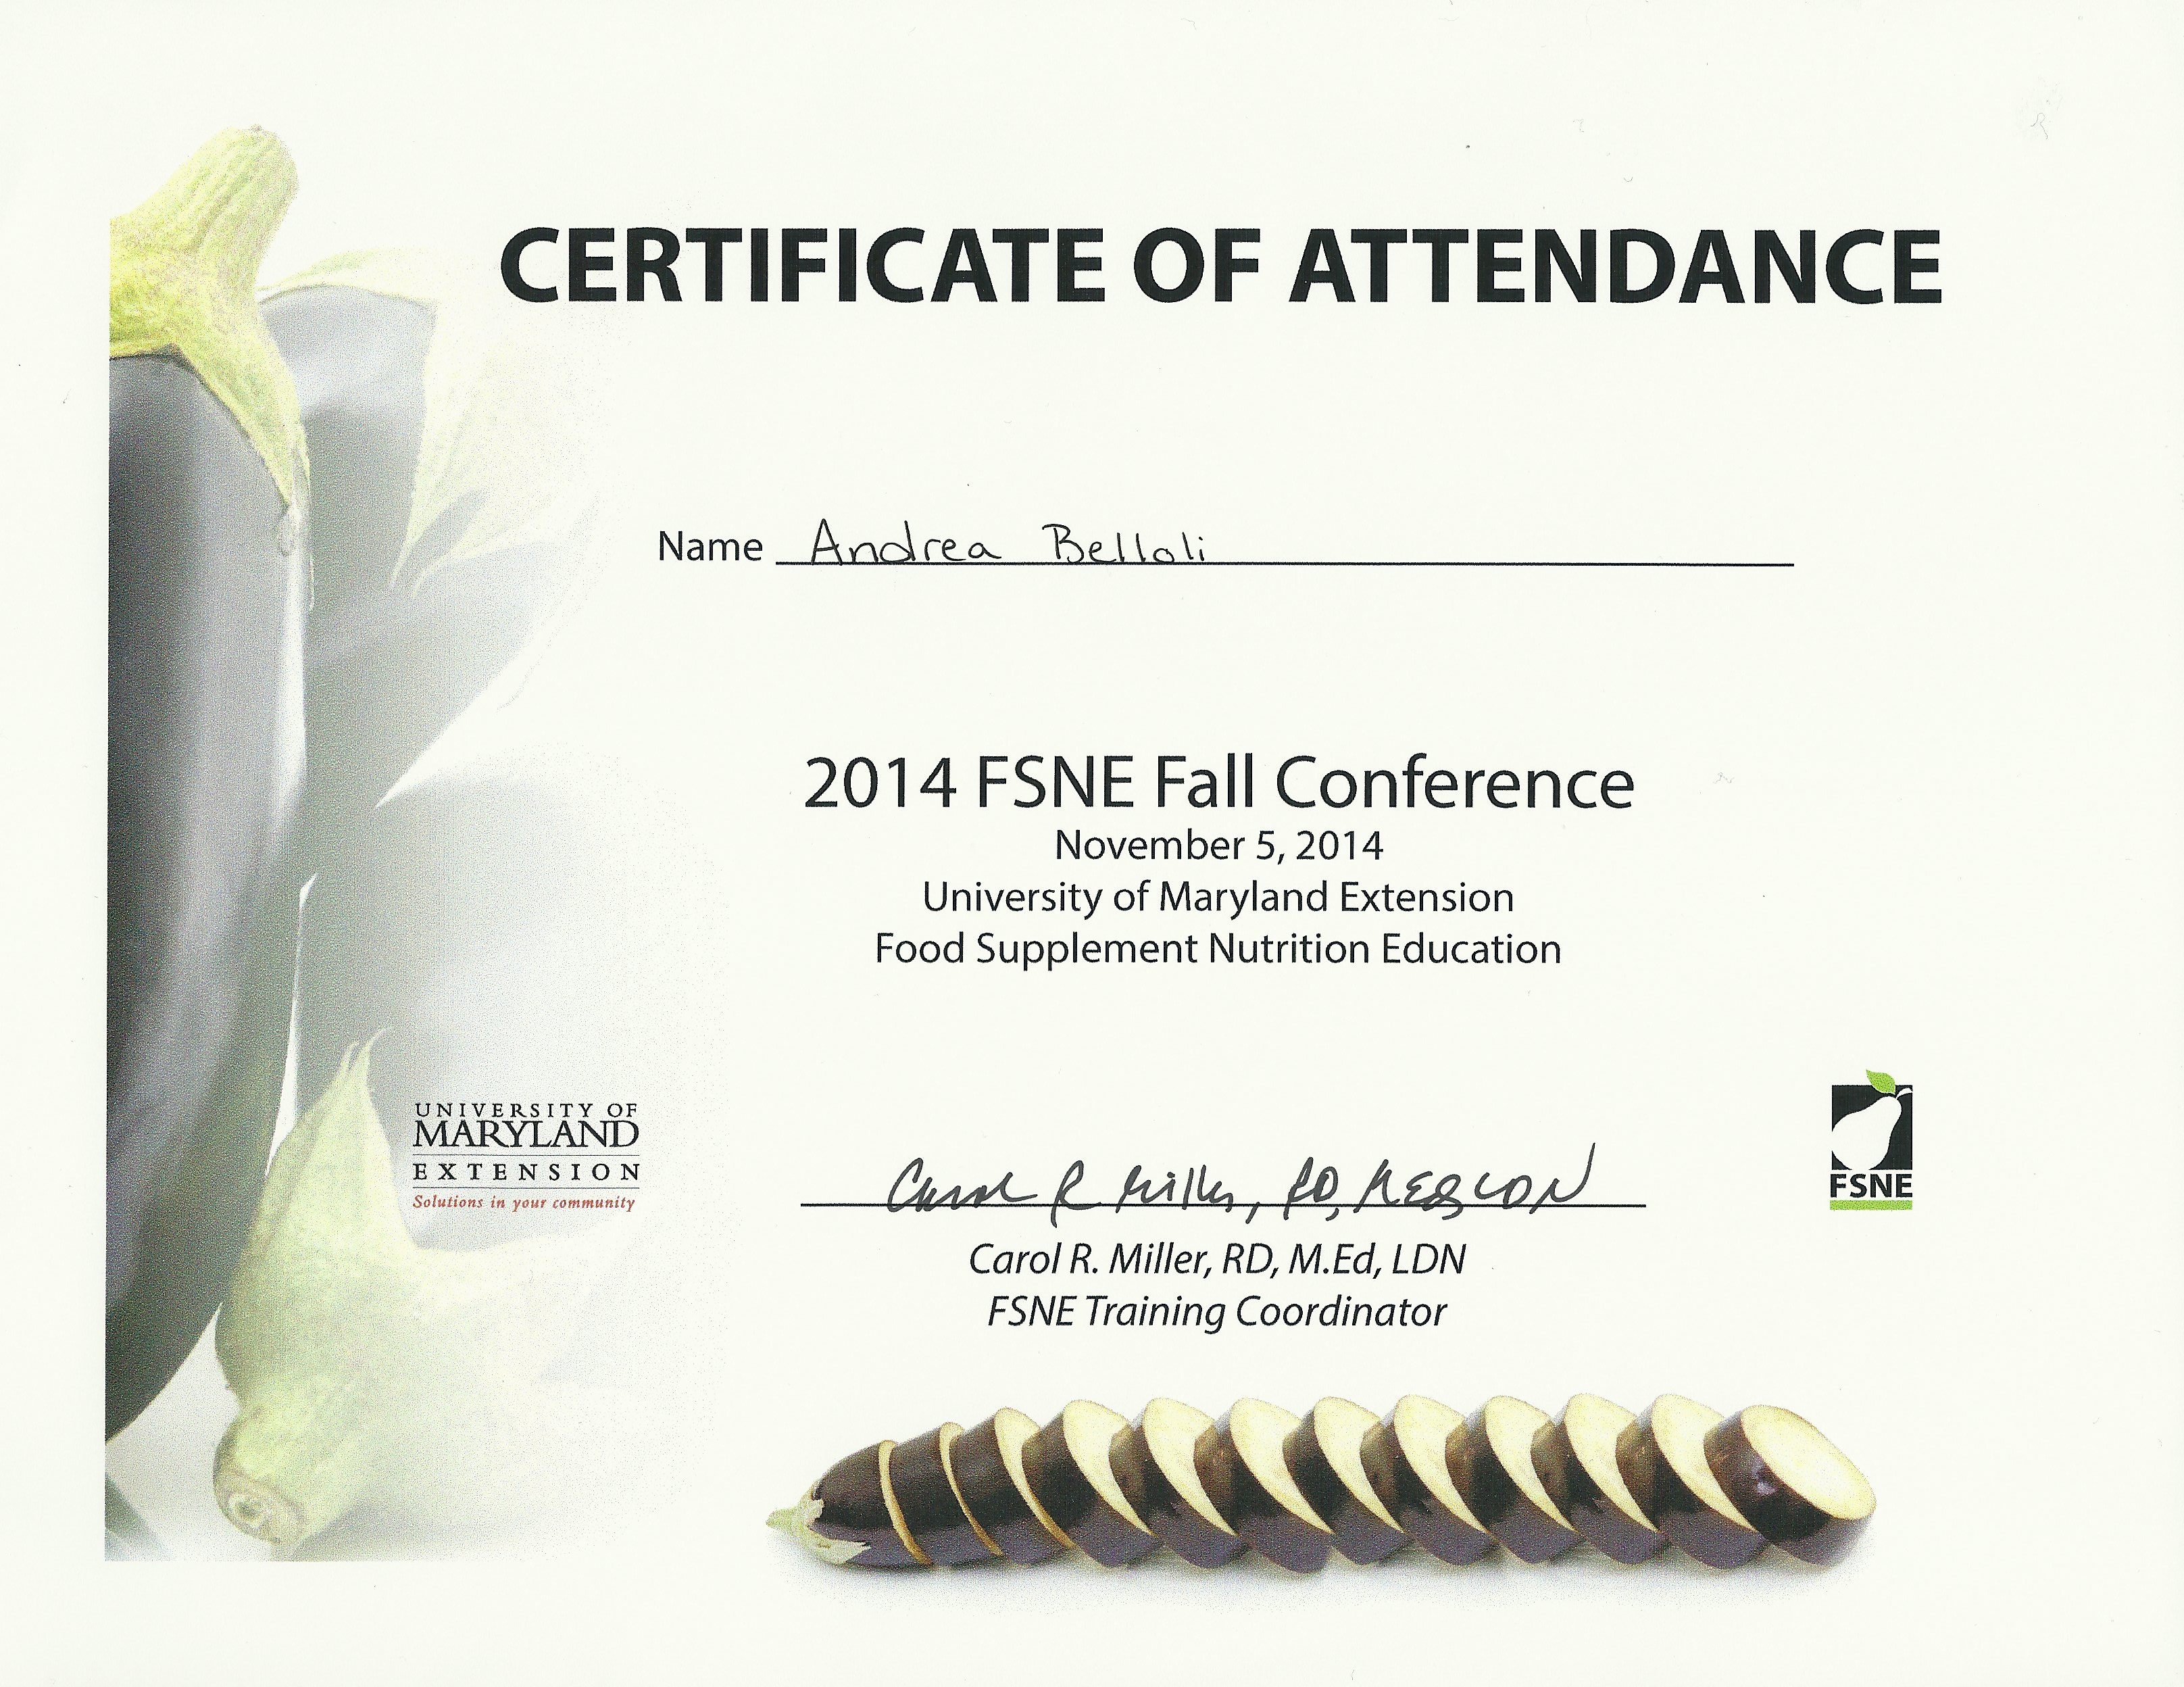 Conferencesevents andrea belloli dietetics portfolio attended the fall fsne conference and participated in teamwork activities and workshops certificate of attendance yadclub Images